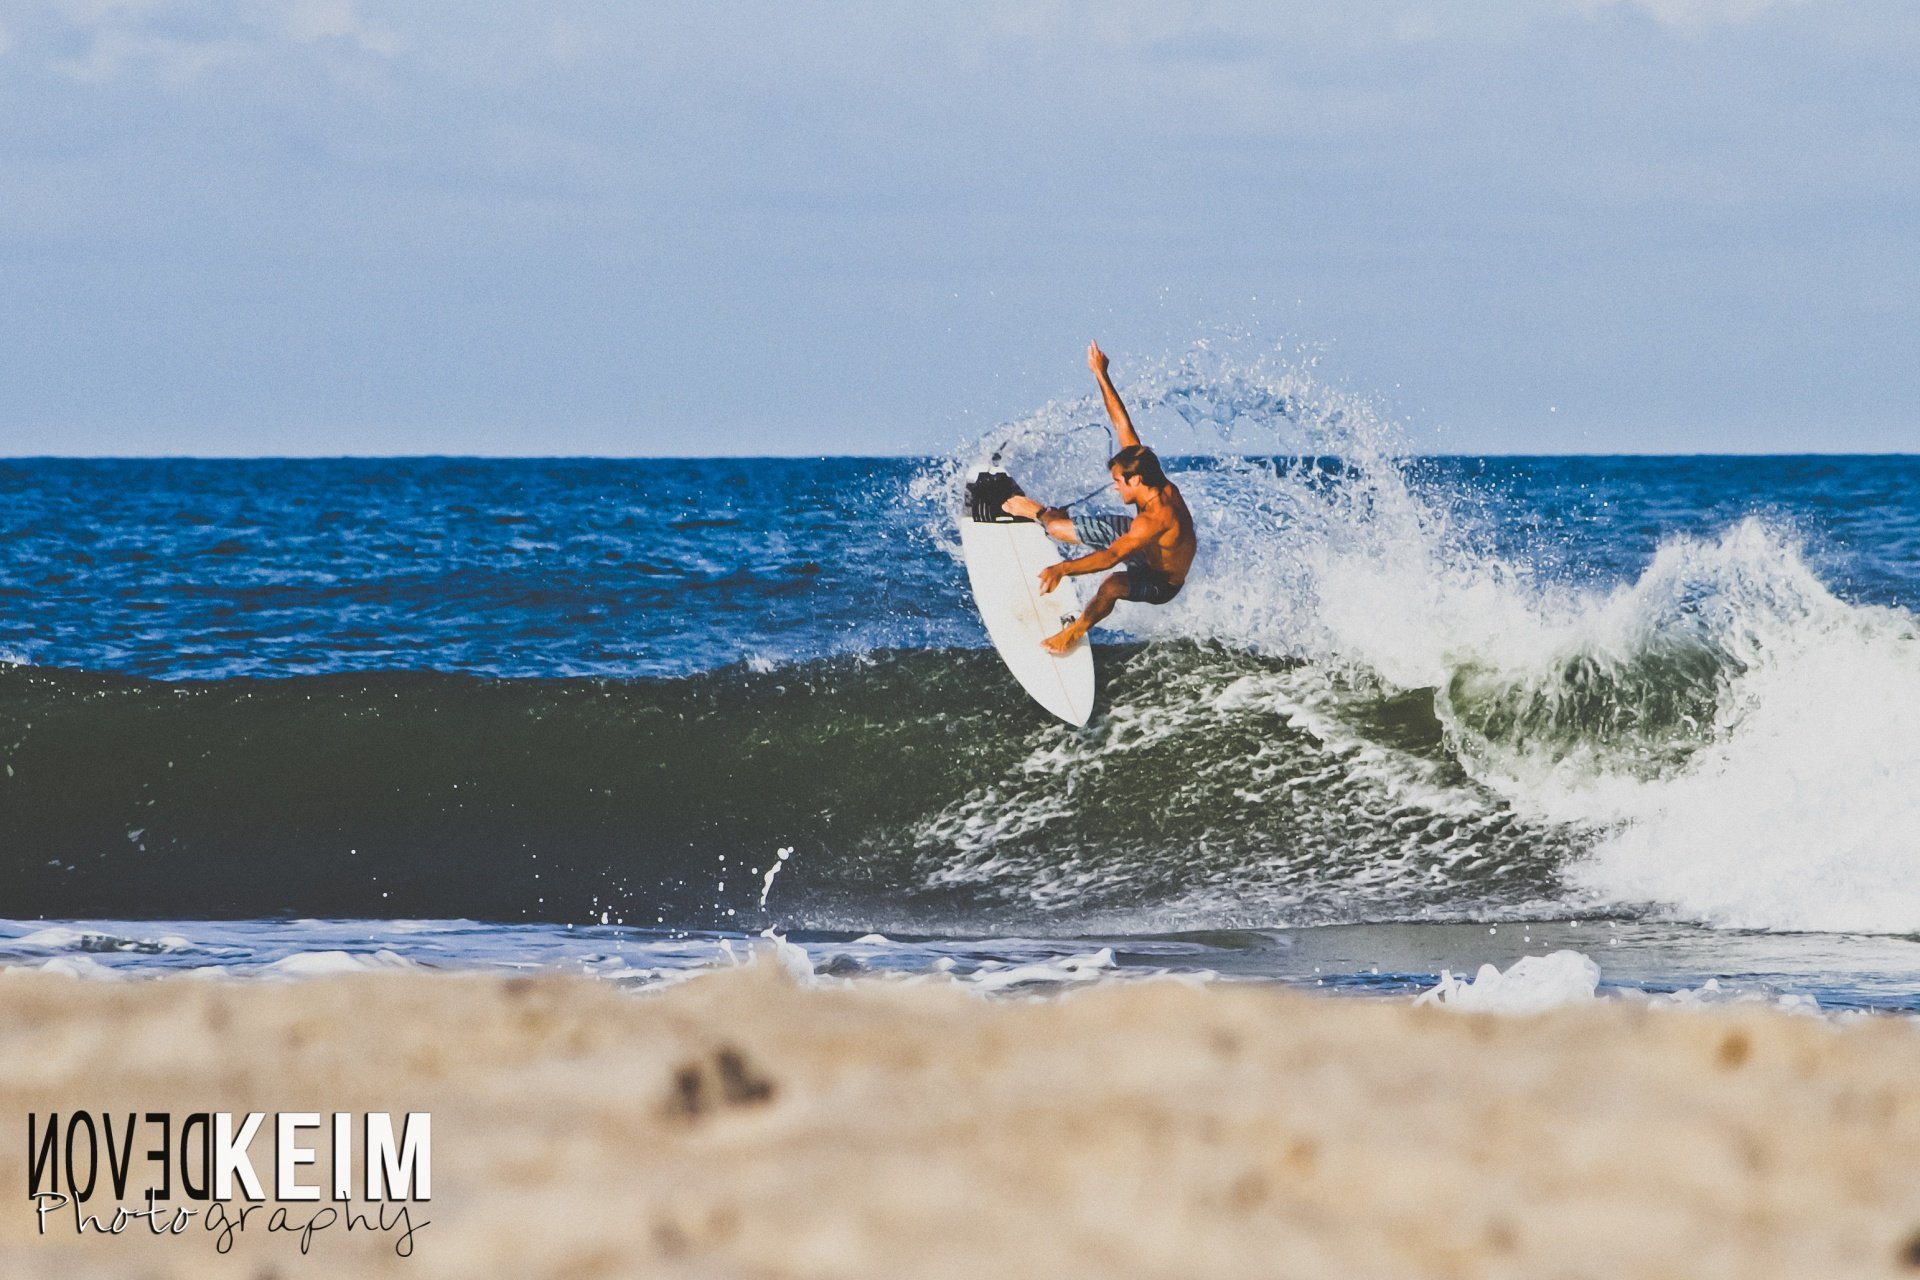 devon Keim's photo of Cape Hatteras